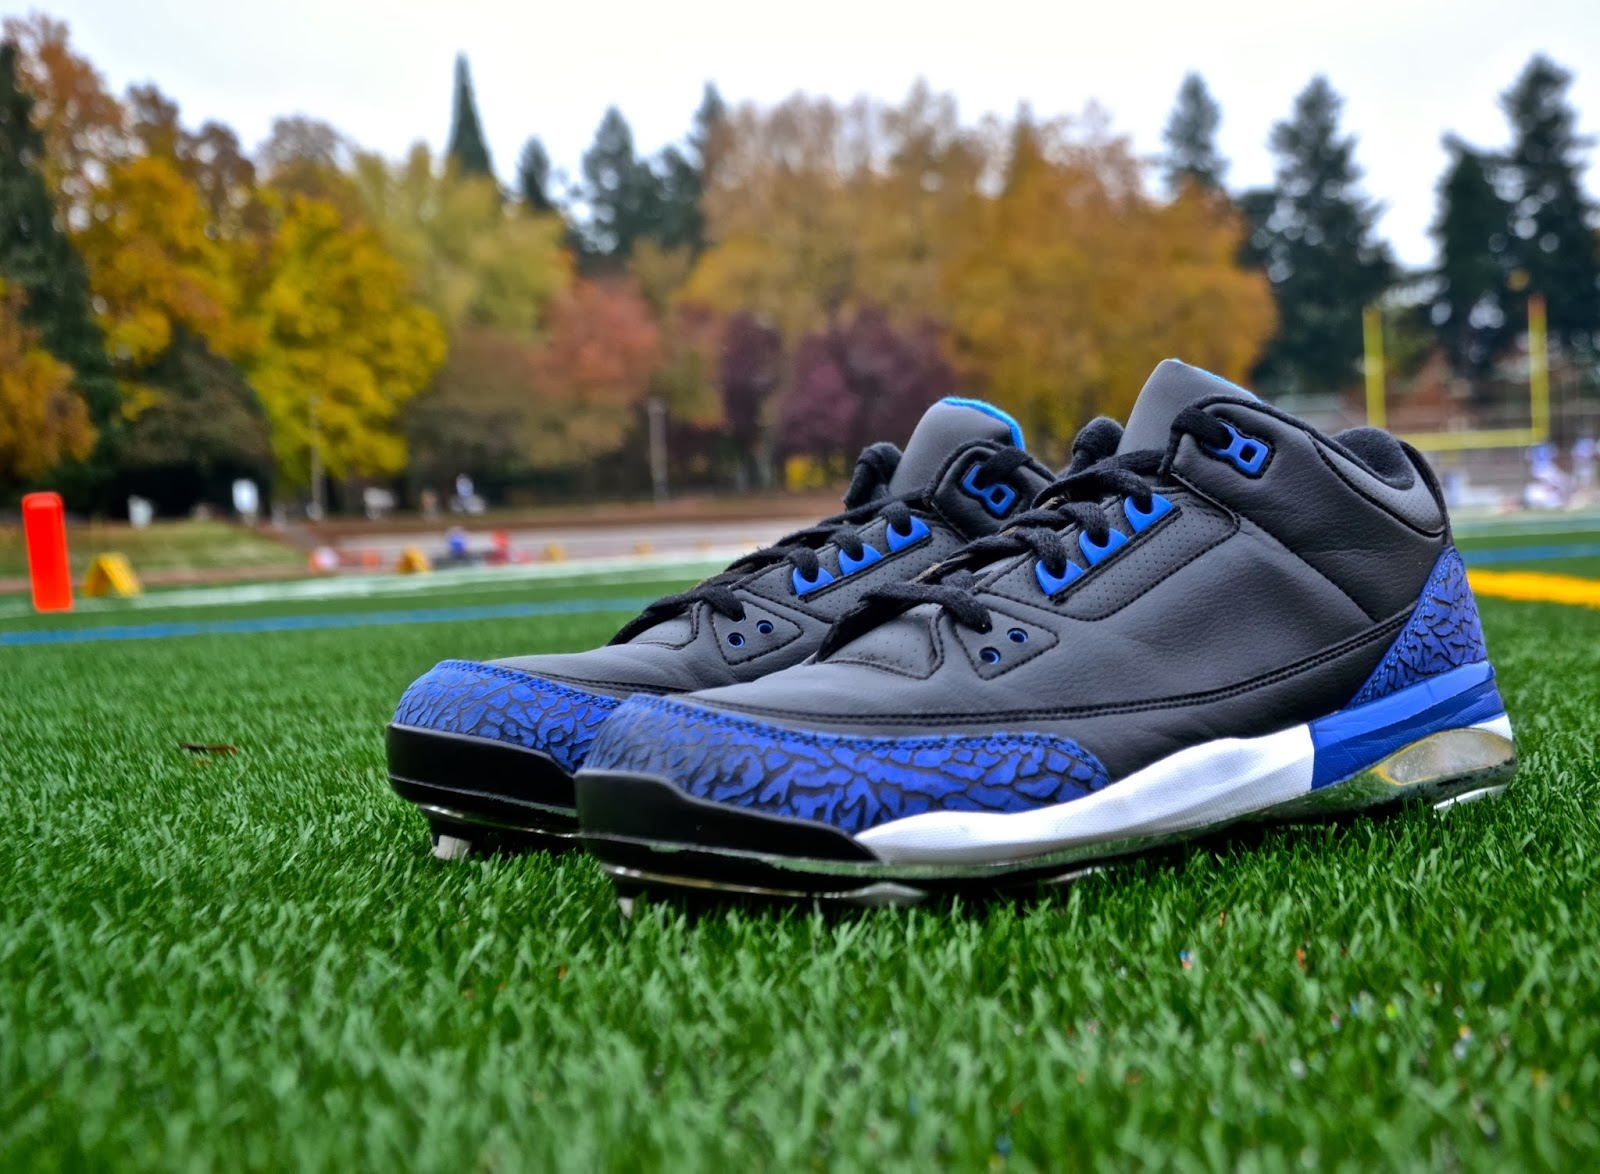 13b8e90991b4d2 You are looking at the Air Jordan 3 cleat intended to be worn by Marvin  Harrison during the 2009 season. We ve seen the black and white cement 3  cleats ...